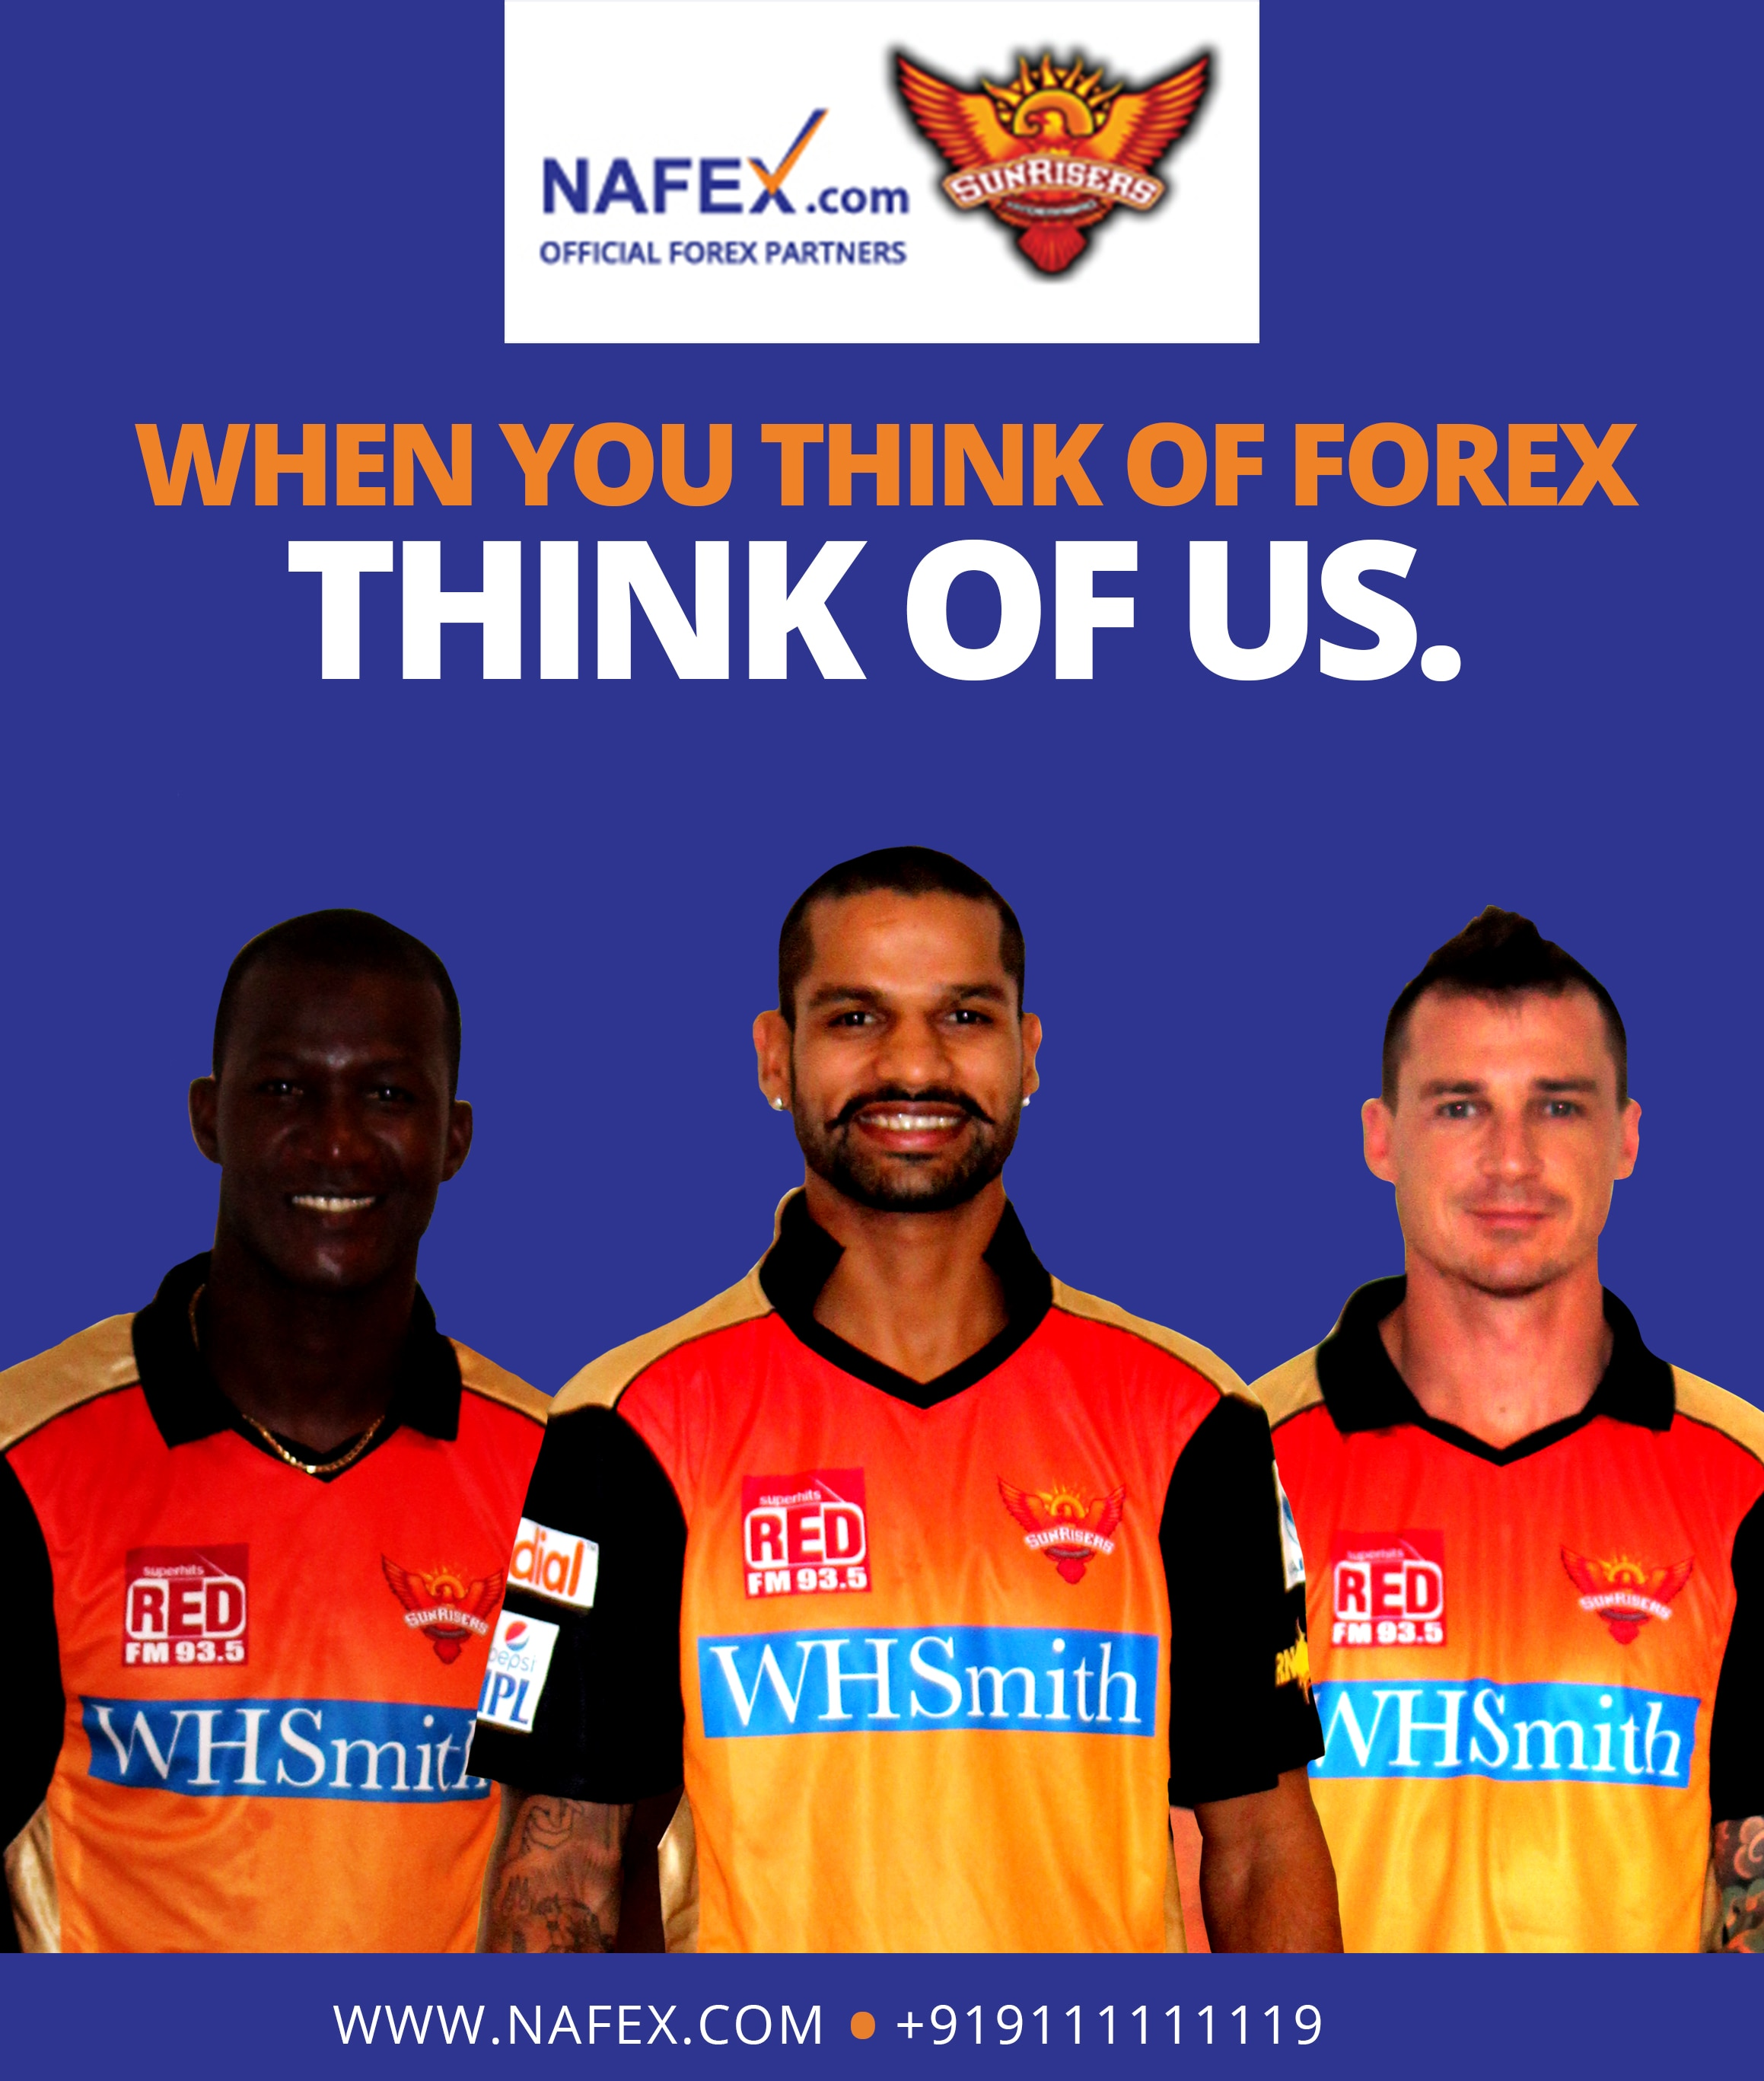 Nafex - Tirupathy Balaji Temple Foreign Currency Exchange Dealers Agents Tirupathy Balaji Temple, Online Travellers Cheque & Forex Prepaid Card